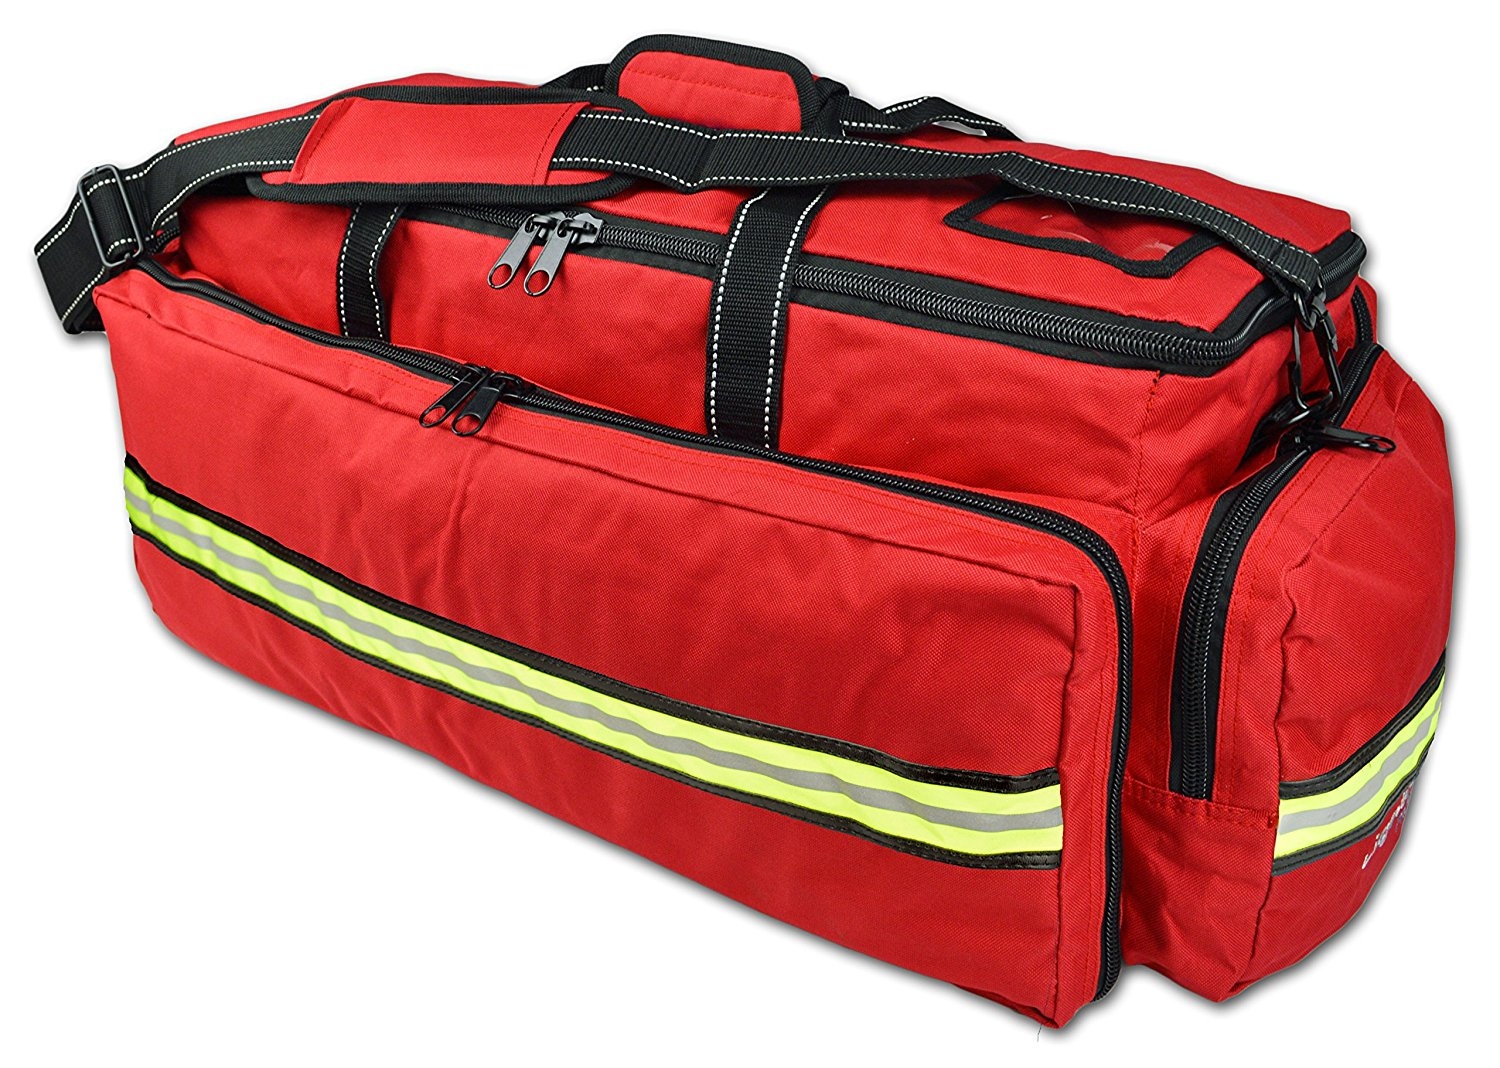 Lightning X Products Jumbo Medic First Responder EMT/EMS Stocked Trauma Kit - Available in 2 Colors